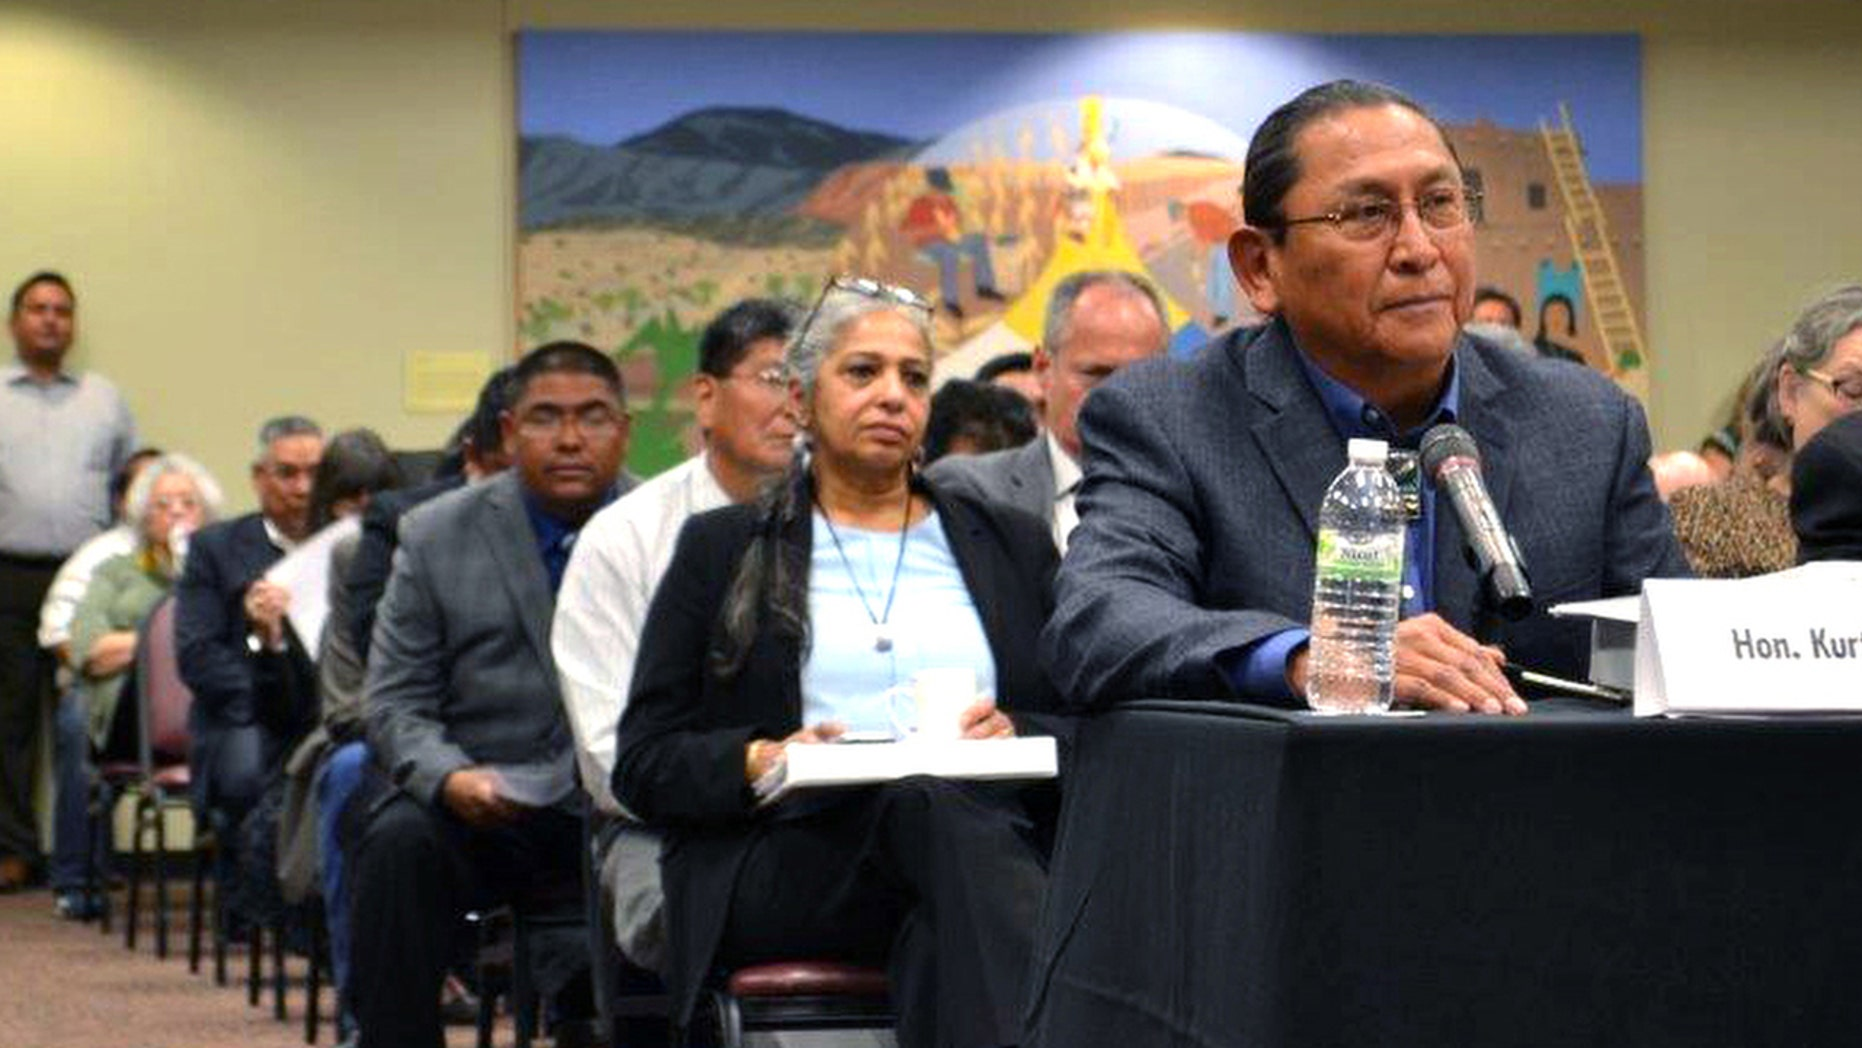 Gov. Kurt Riley of Acoma Pueblo testifies at a congressional field hearing in Albuquerque, N.M., on Tuesday, Oct. 18, 2016.